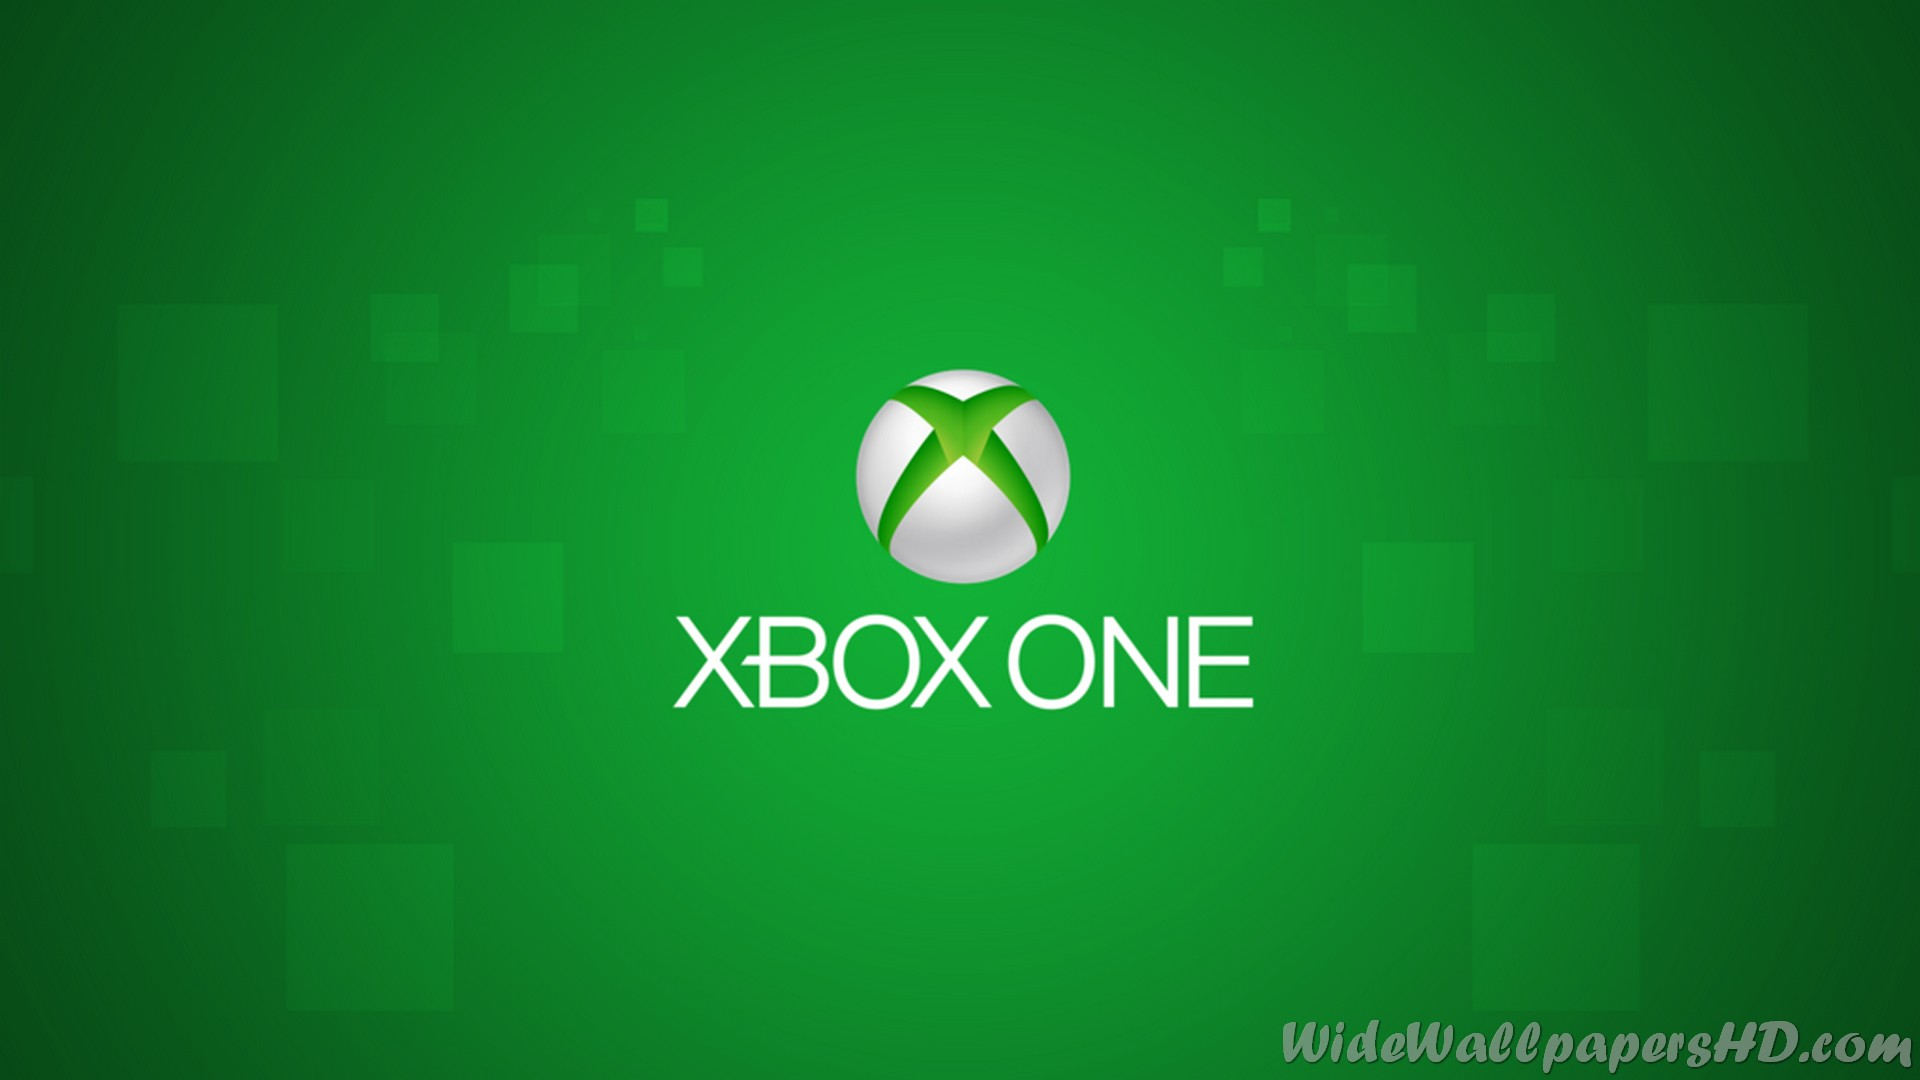 Xbox One Wallpaper 1920x1080